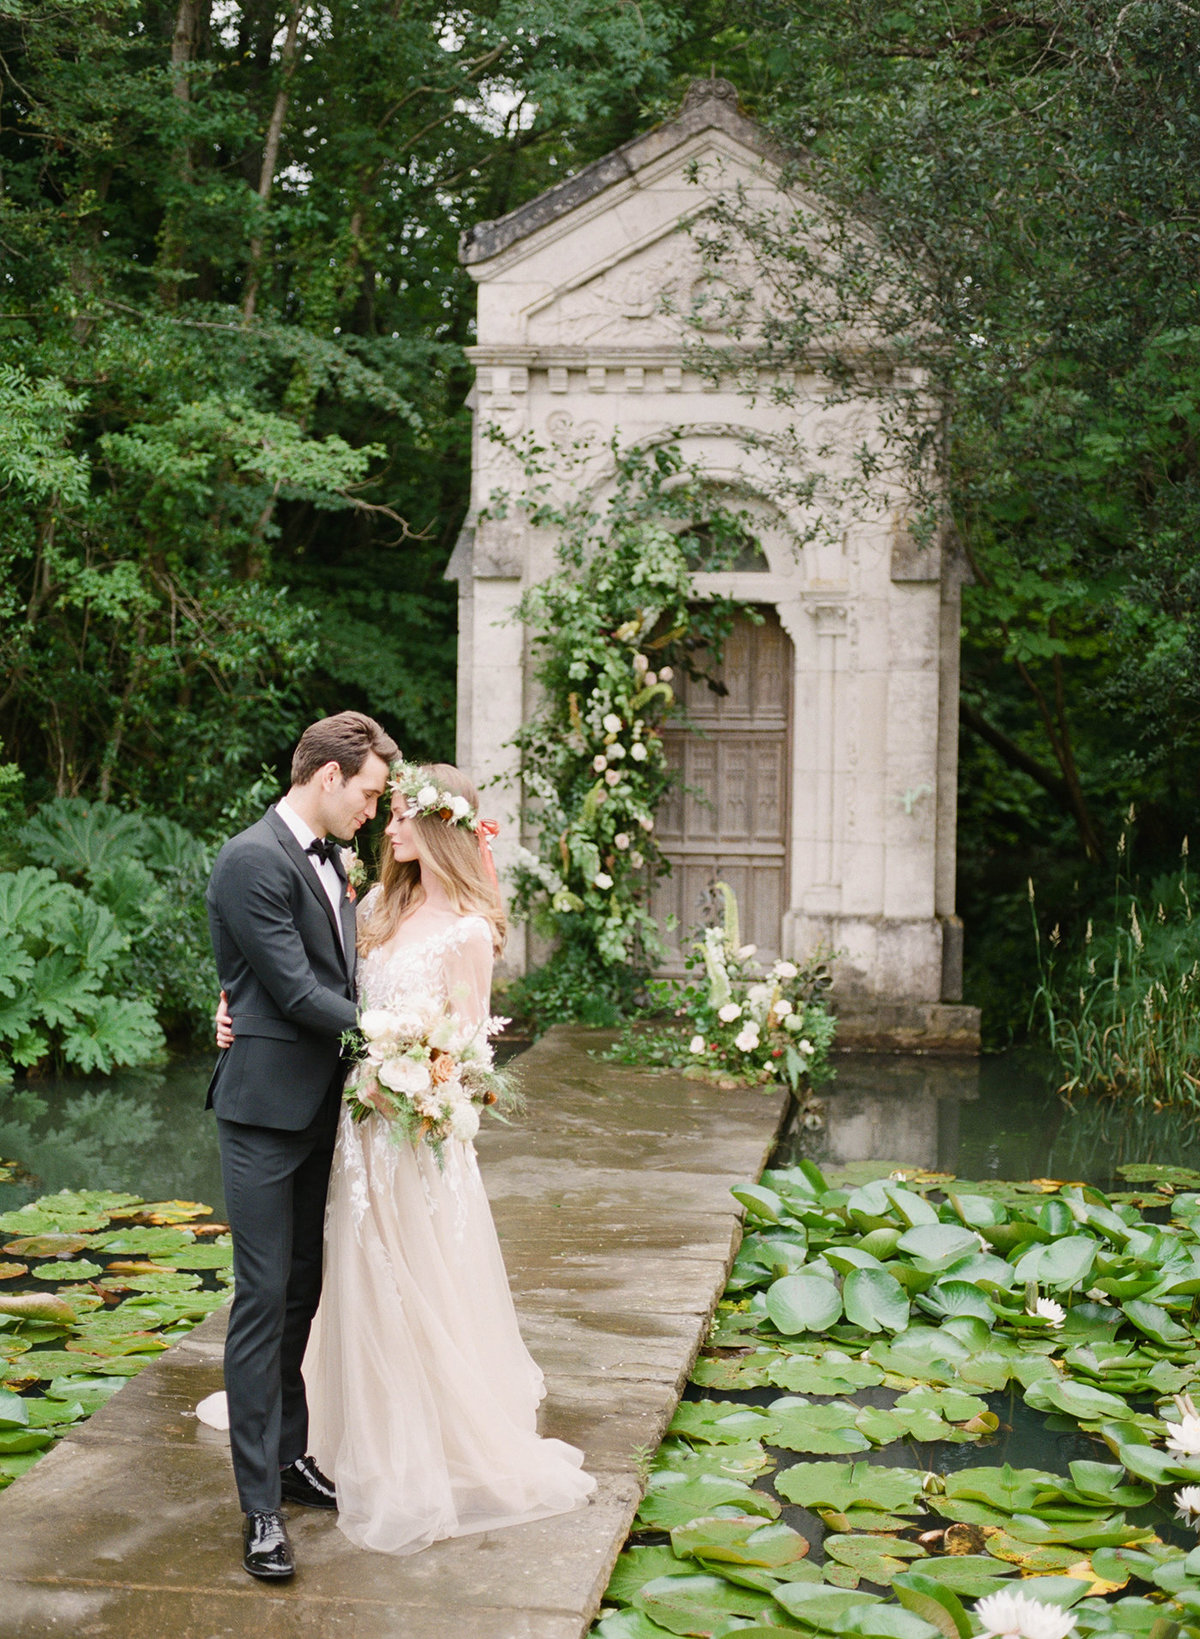 Destination Wedding Photographer - Ireland Editorial - Cliff at Lyons Kildare Ireland - Sarah Sunstrom Photography - 21